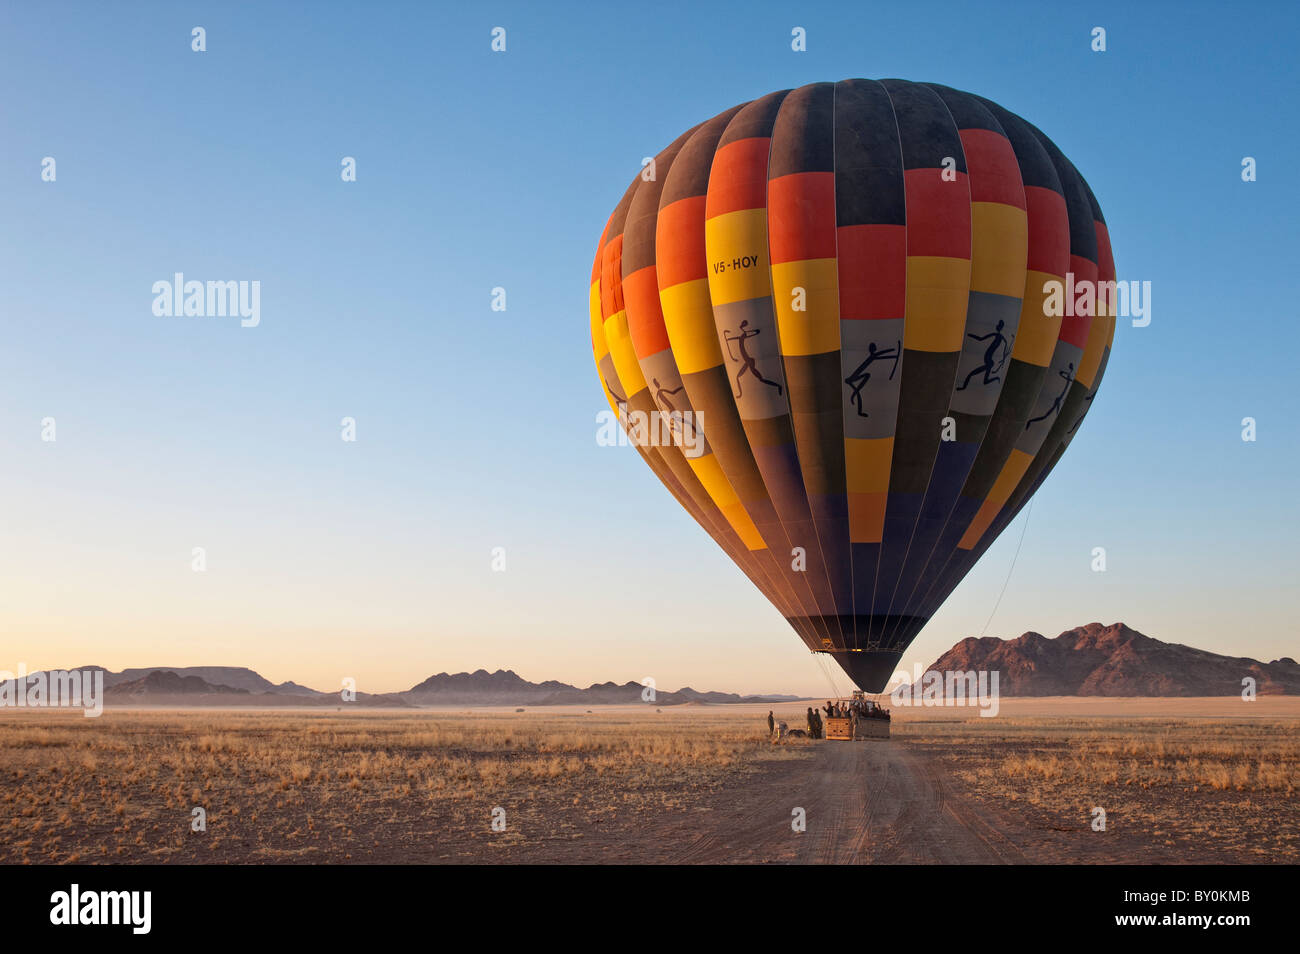 Hot air balloon ready for take-off at sunrise in Namib-Naukluft Park, central Namibia. - Stock Image